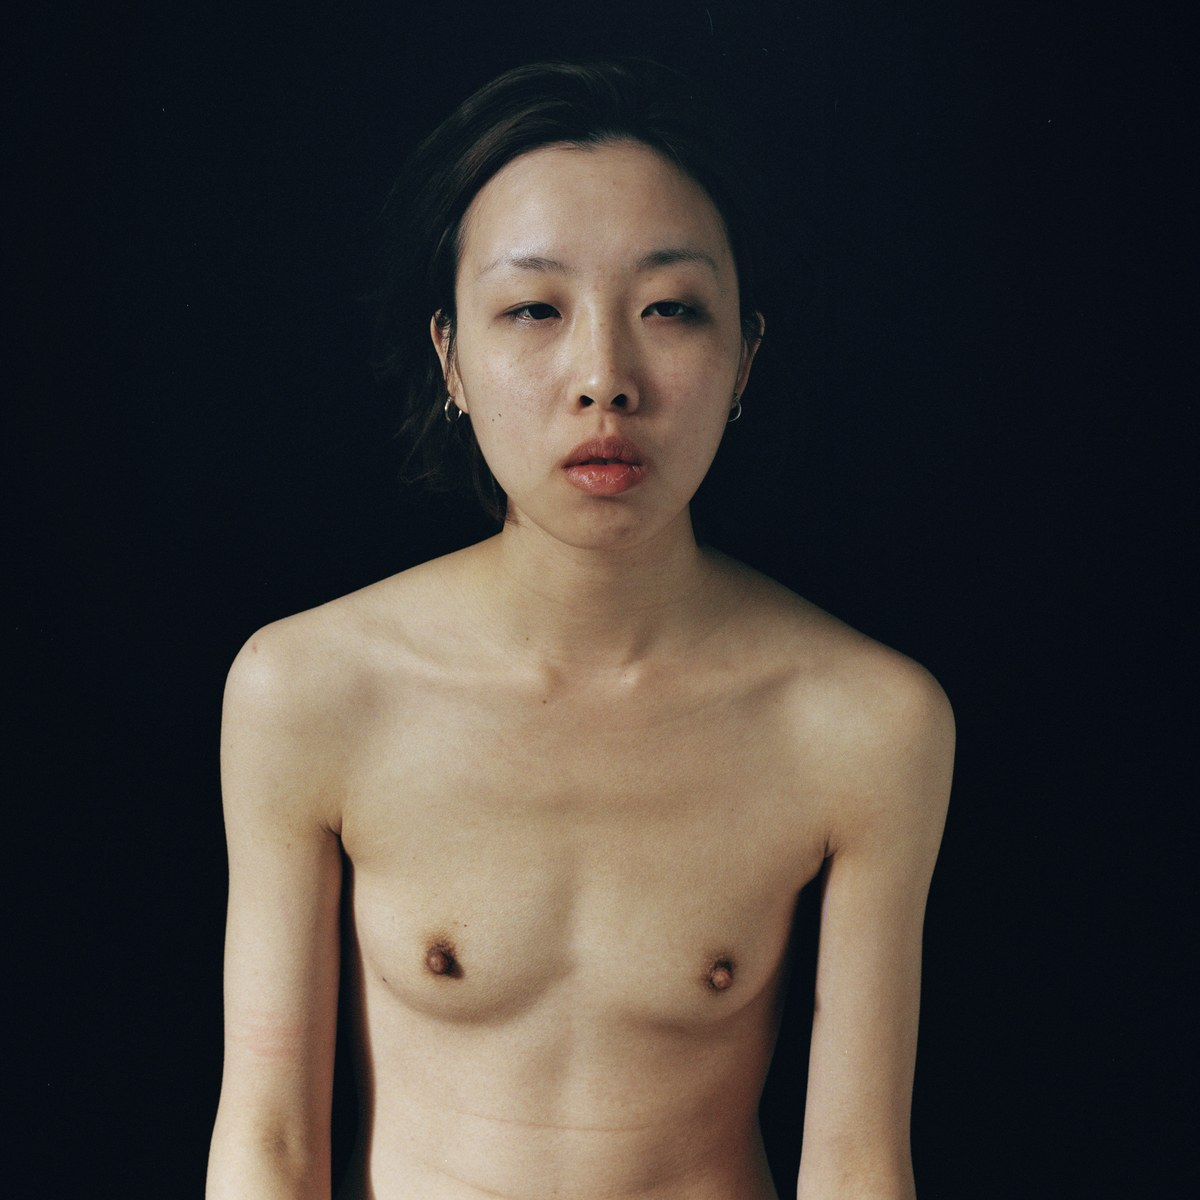 «Terms & Conditions»: La exhibición fotográfica que desafía la censura en redes sociales con #FreeTheNipple